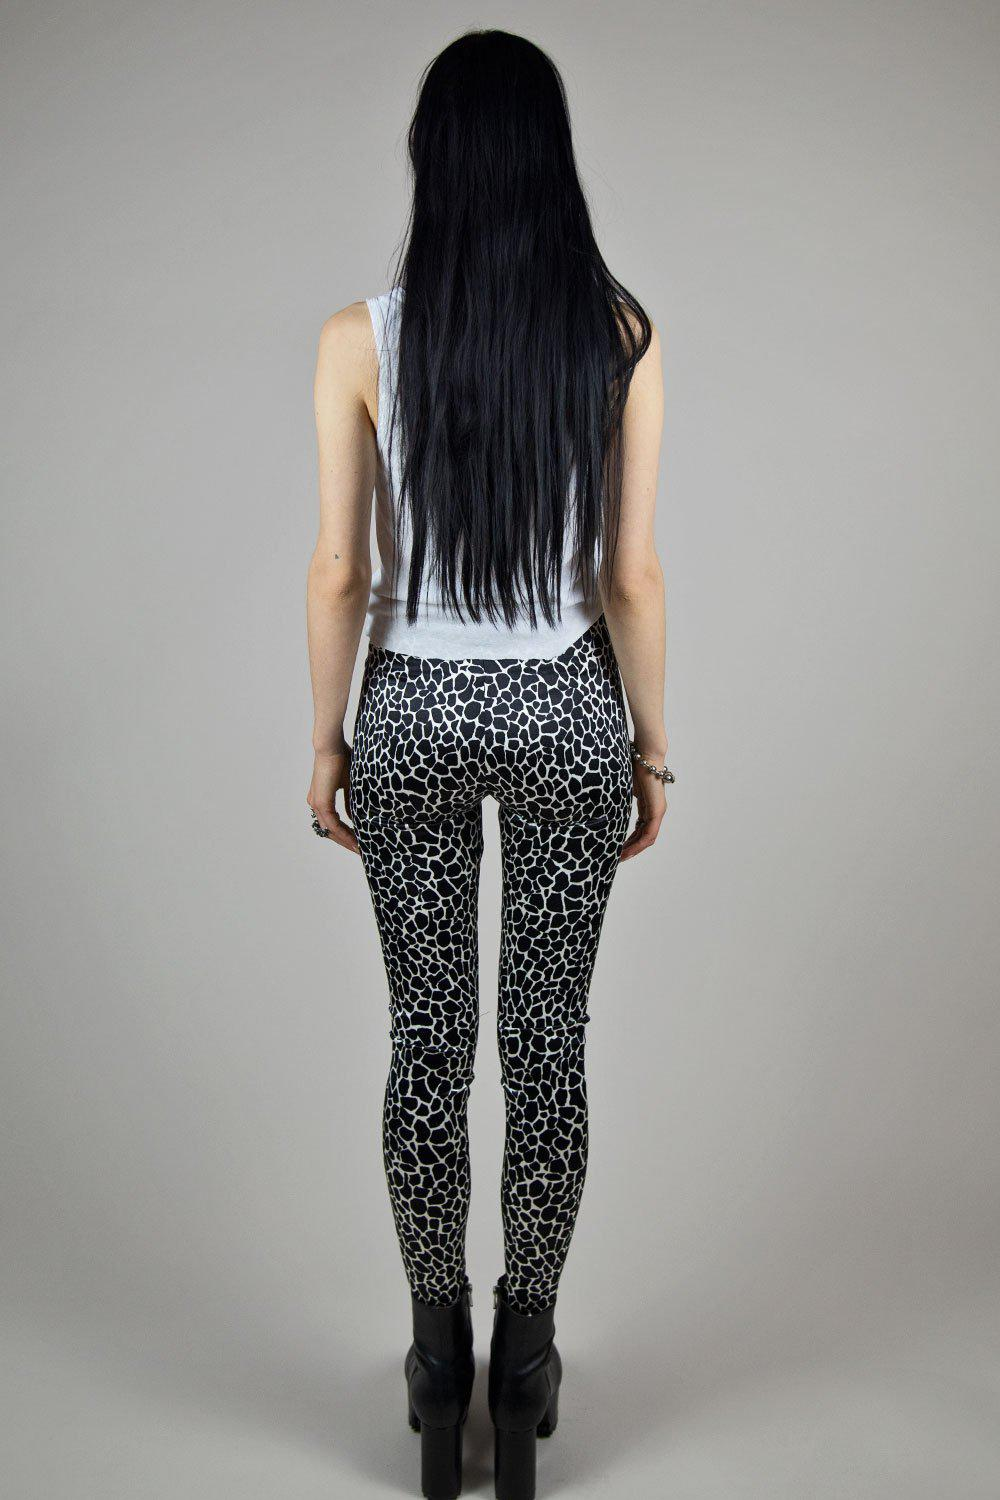 Wild Animal Spotted Nylon Spandex Grommet Pants